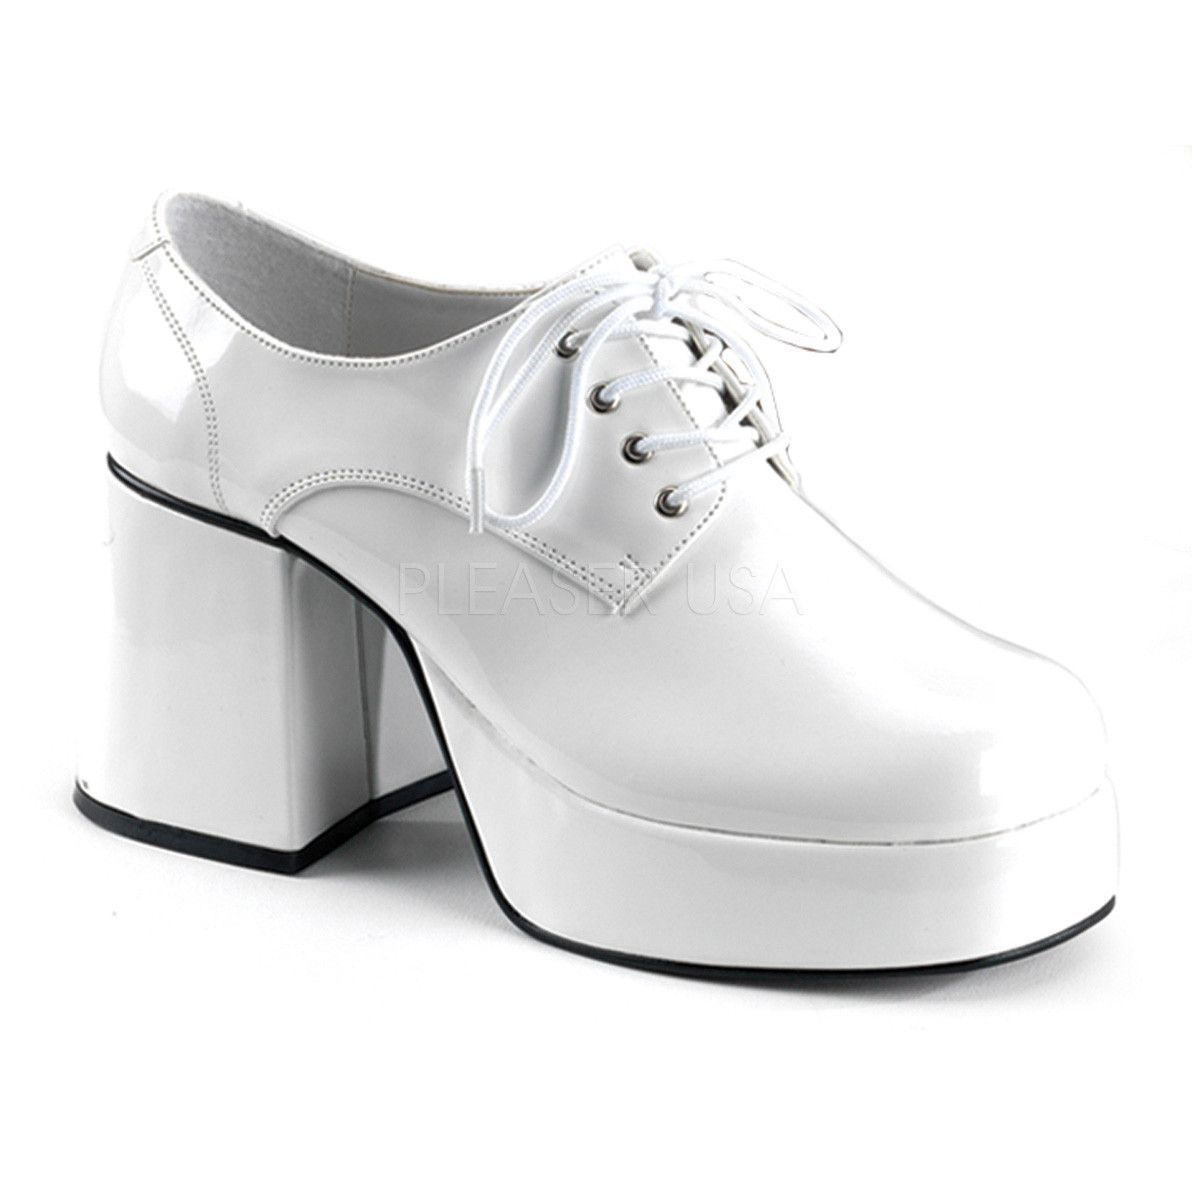 Men's White Pat Disco 70s Platform Retro Costume Shoes